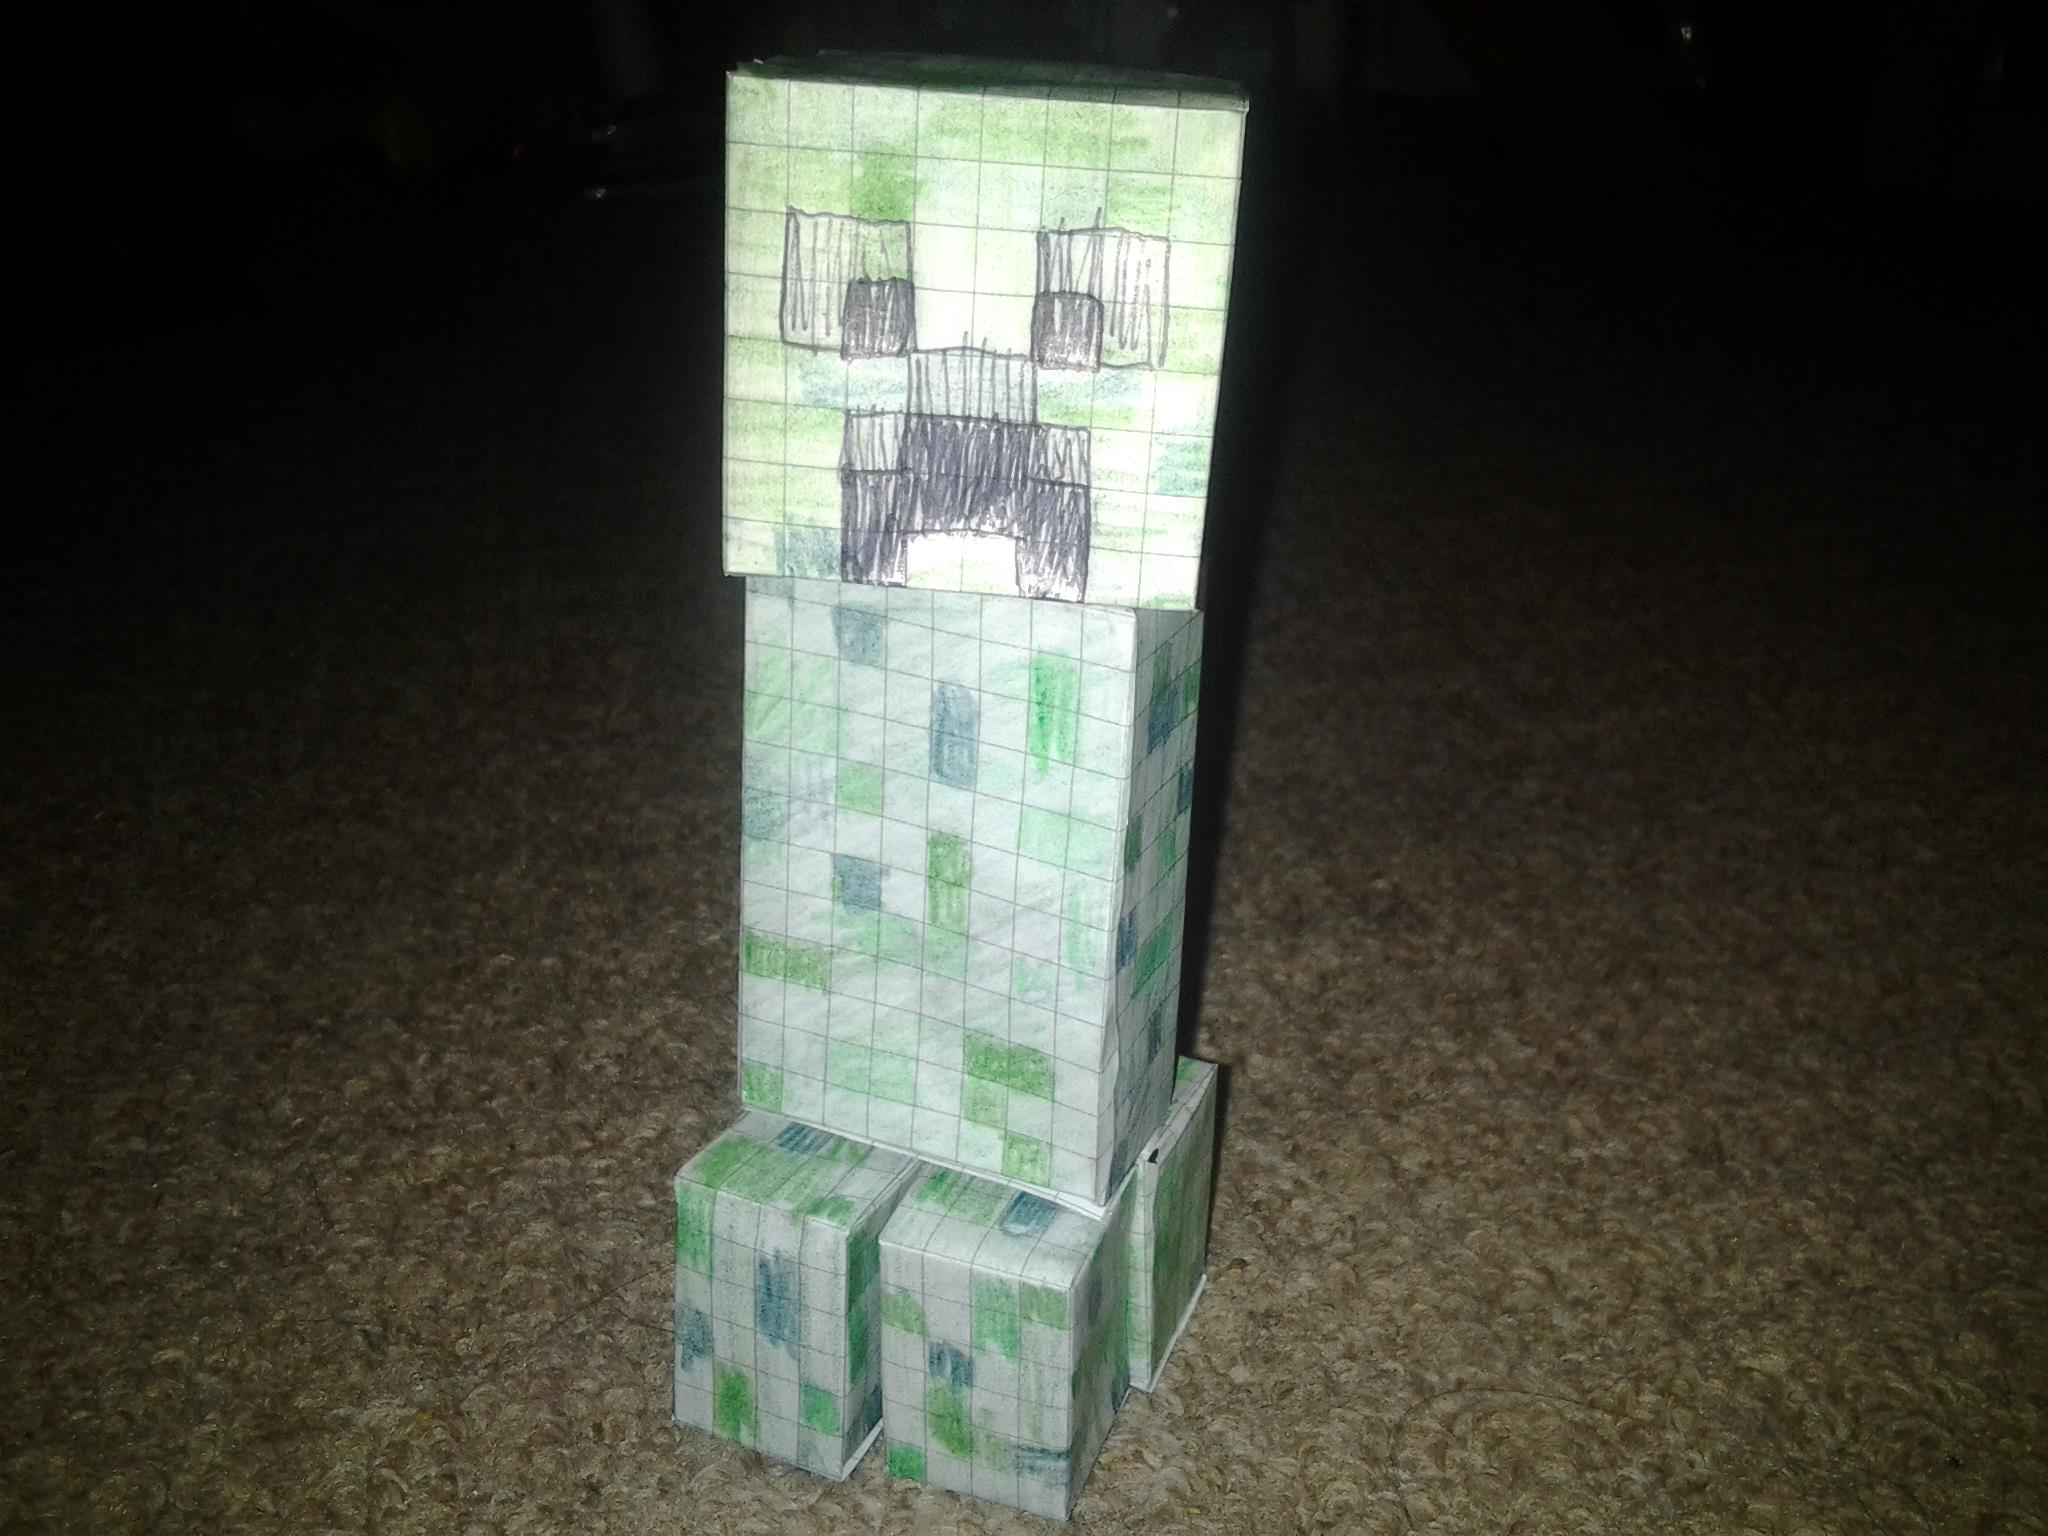 standard green minecraft creeper paper model (papercraft) made by me